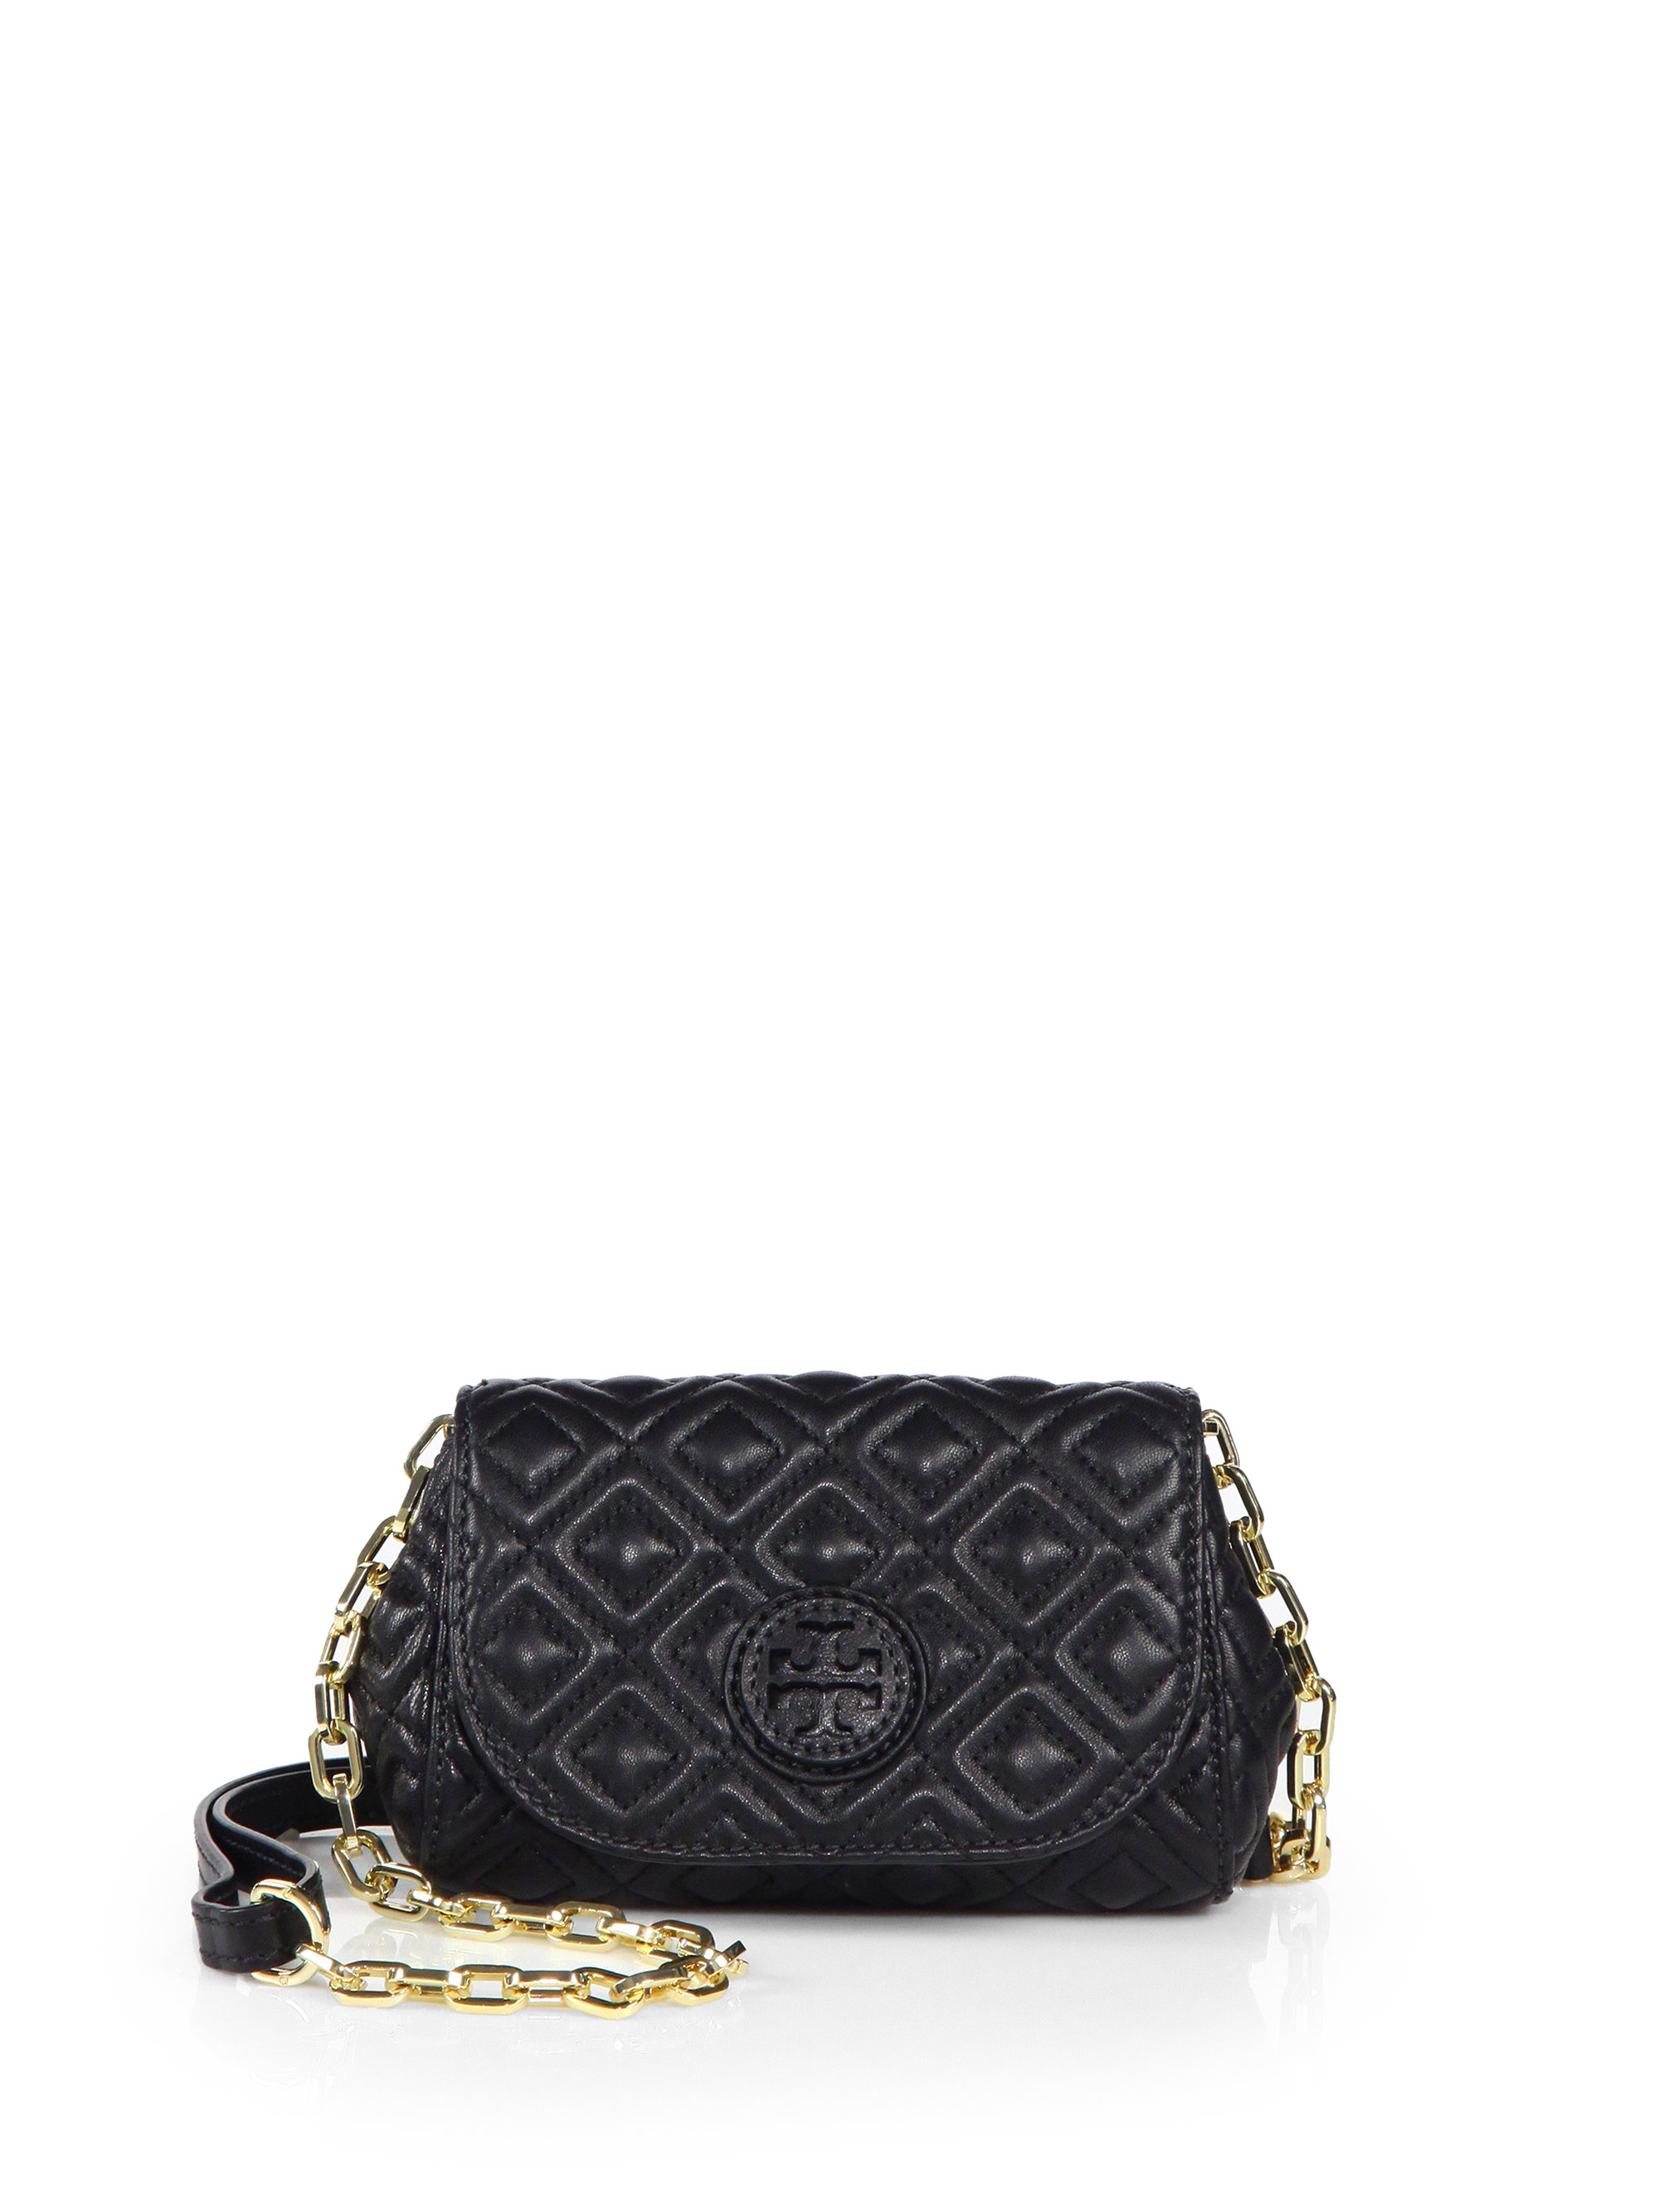 Lyst - Tory burch Marion Quilted Small Crossbody Bag in Black : marion quilted crossbody - Adamdwight.com